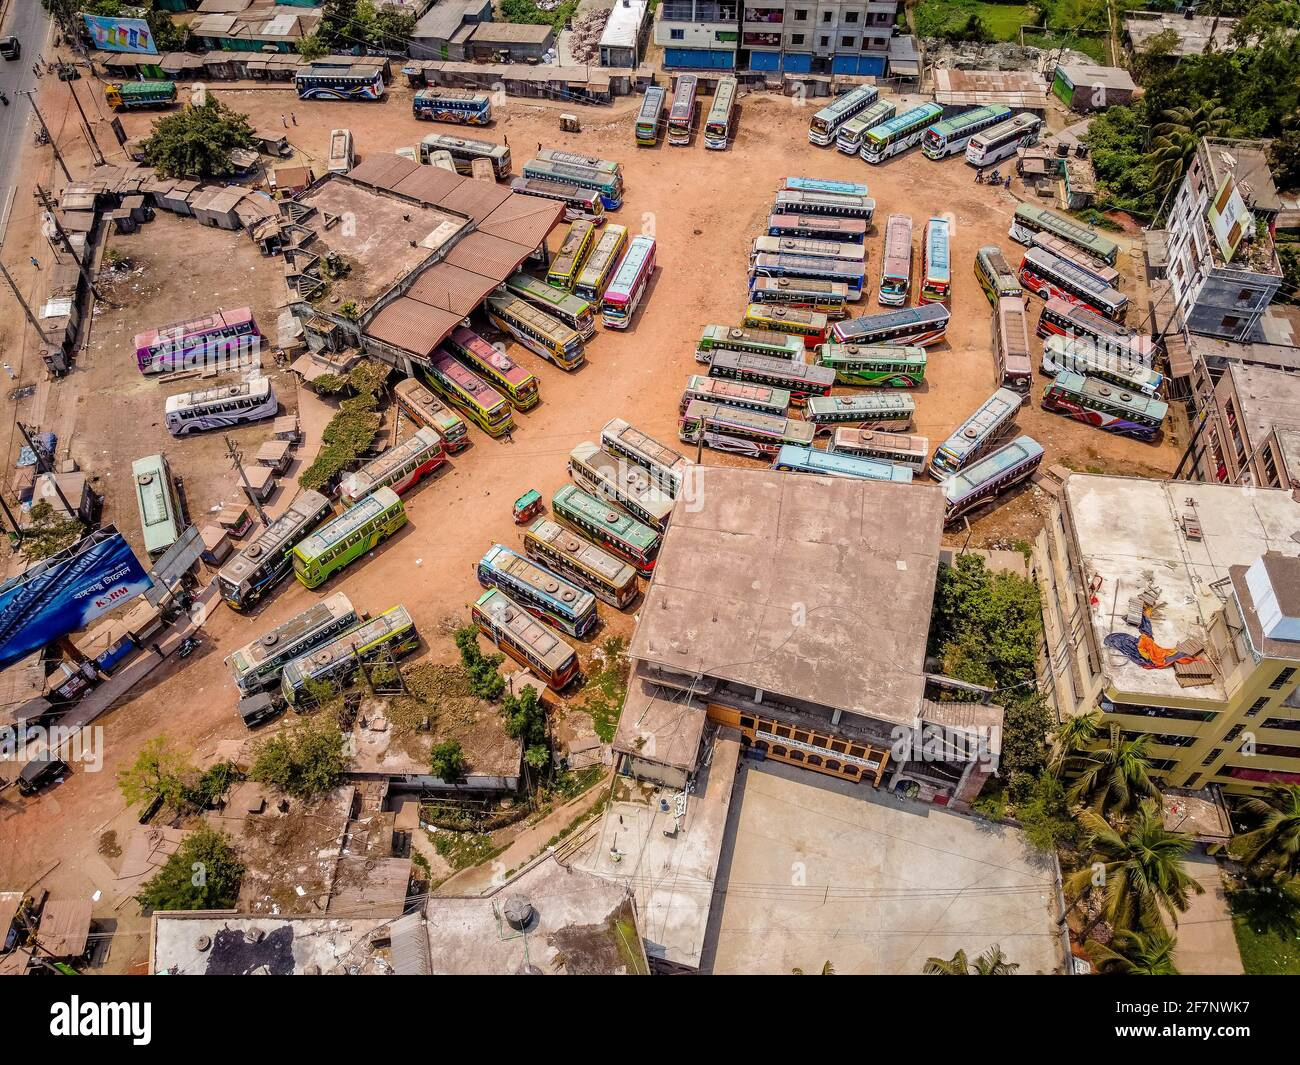 Barishal, Barishal, Bangladesh. 9th Apr, 2021. Several Buses are parked at the Barisal central bus stand, one of the busiest in the southern region of the country, during a week-long nationwide Covid lockdown that began on Monday Credit: Mustasinur Rahman Alvi/ZUMA Wire/Alamy Live News Stock Photo